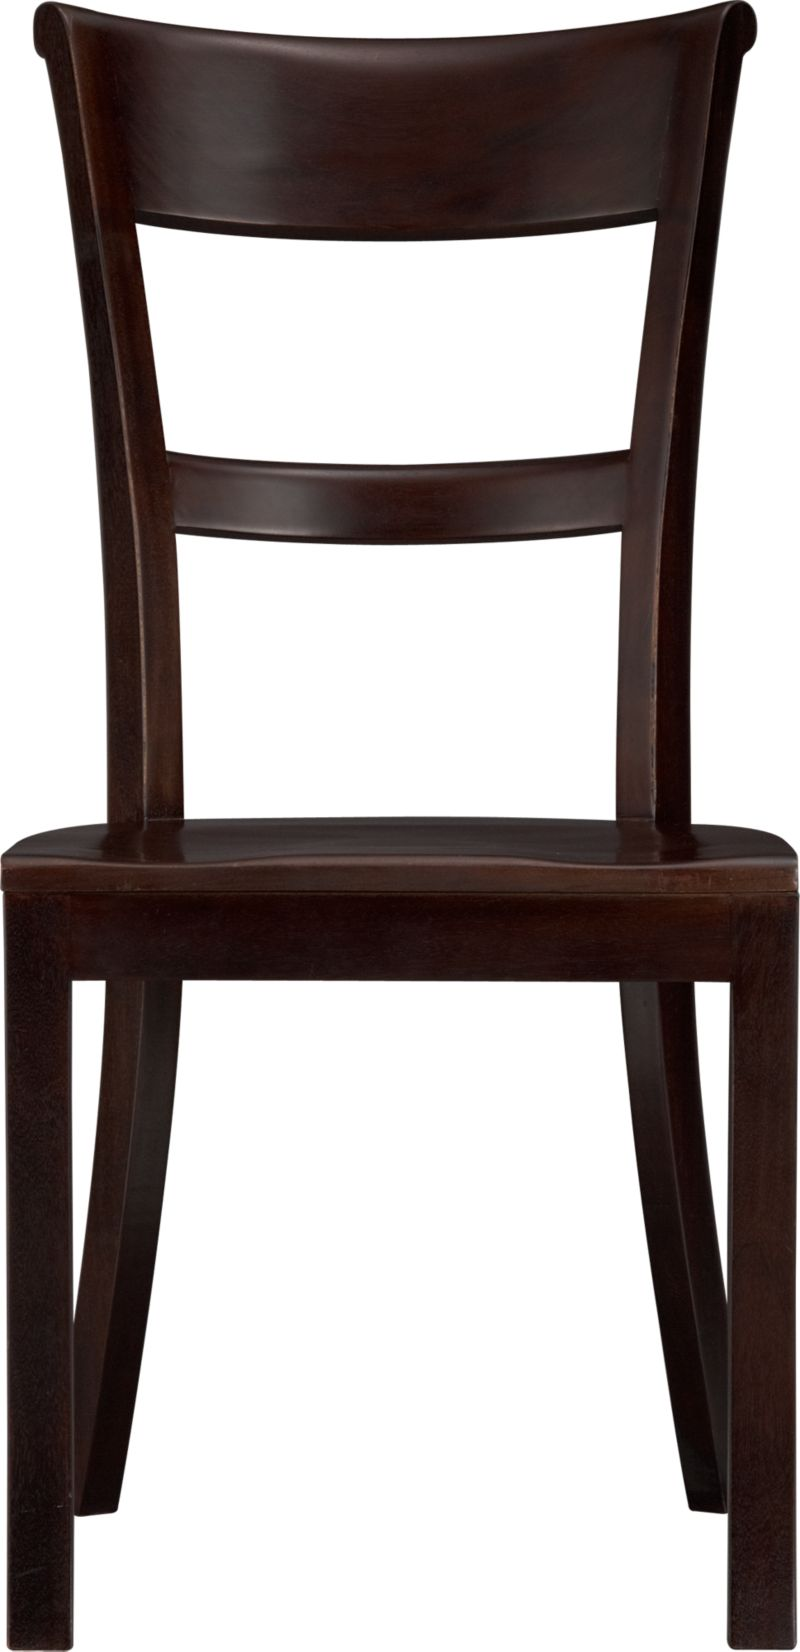 Graceful lines with the beauty and integrity of richly-grained solid mahogany sit well at our Kipling table. Chair back has a deep, comfortable curve and is gently scrolled. Beading detail on the apron adds another touch of tradition.<br /><br /><NEWTAG/><ul><li>FSC-certified solid mahogany</li><li>Clear protective lacquer finish</li><li>Contoured seat</li><li>Made in Indonesia</li></ul>